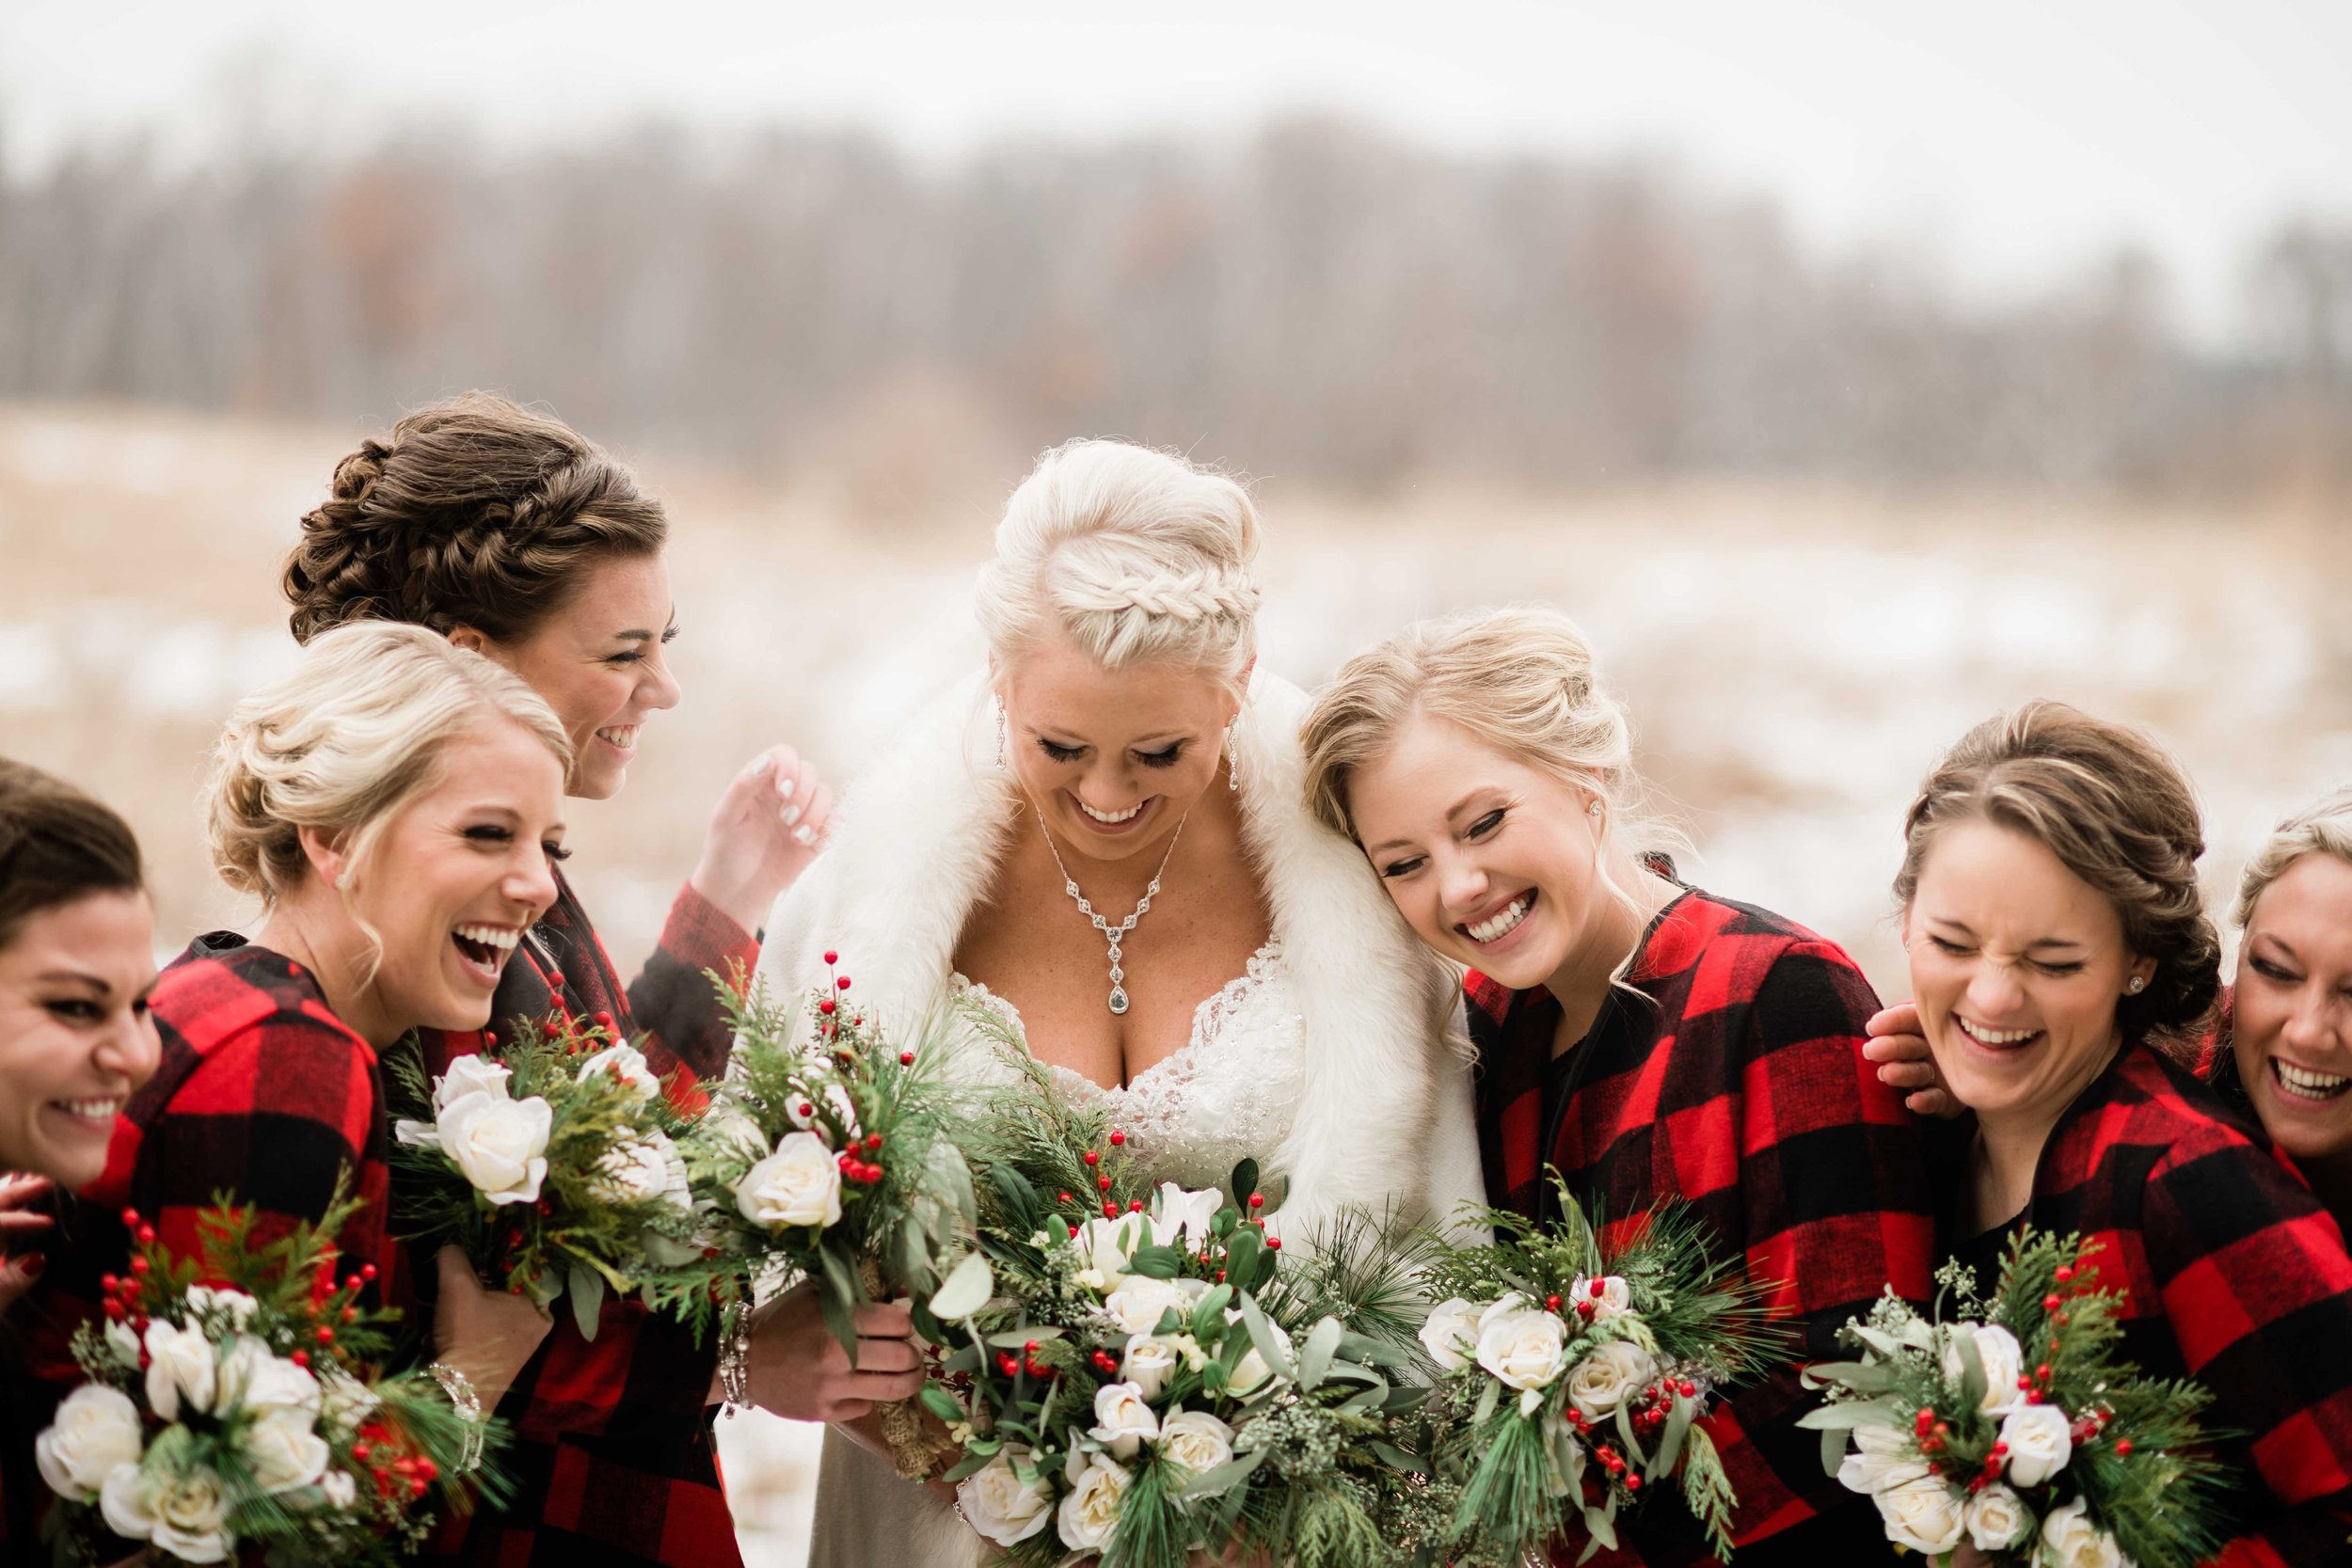 Bride and bridesmaids laughing as they huddle for warmth